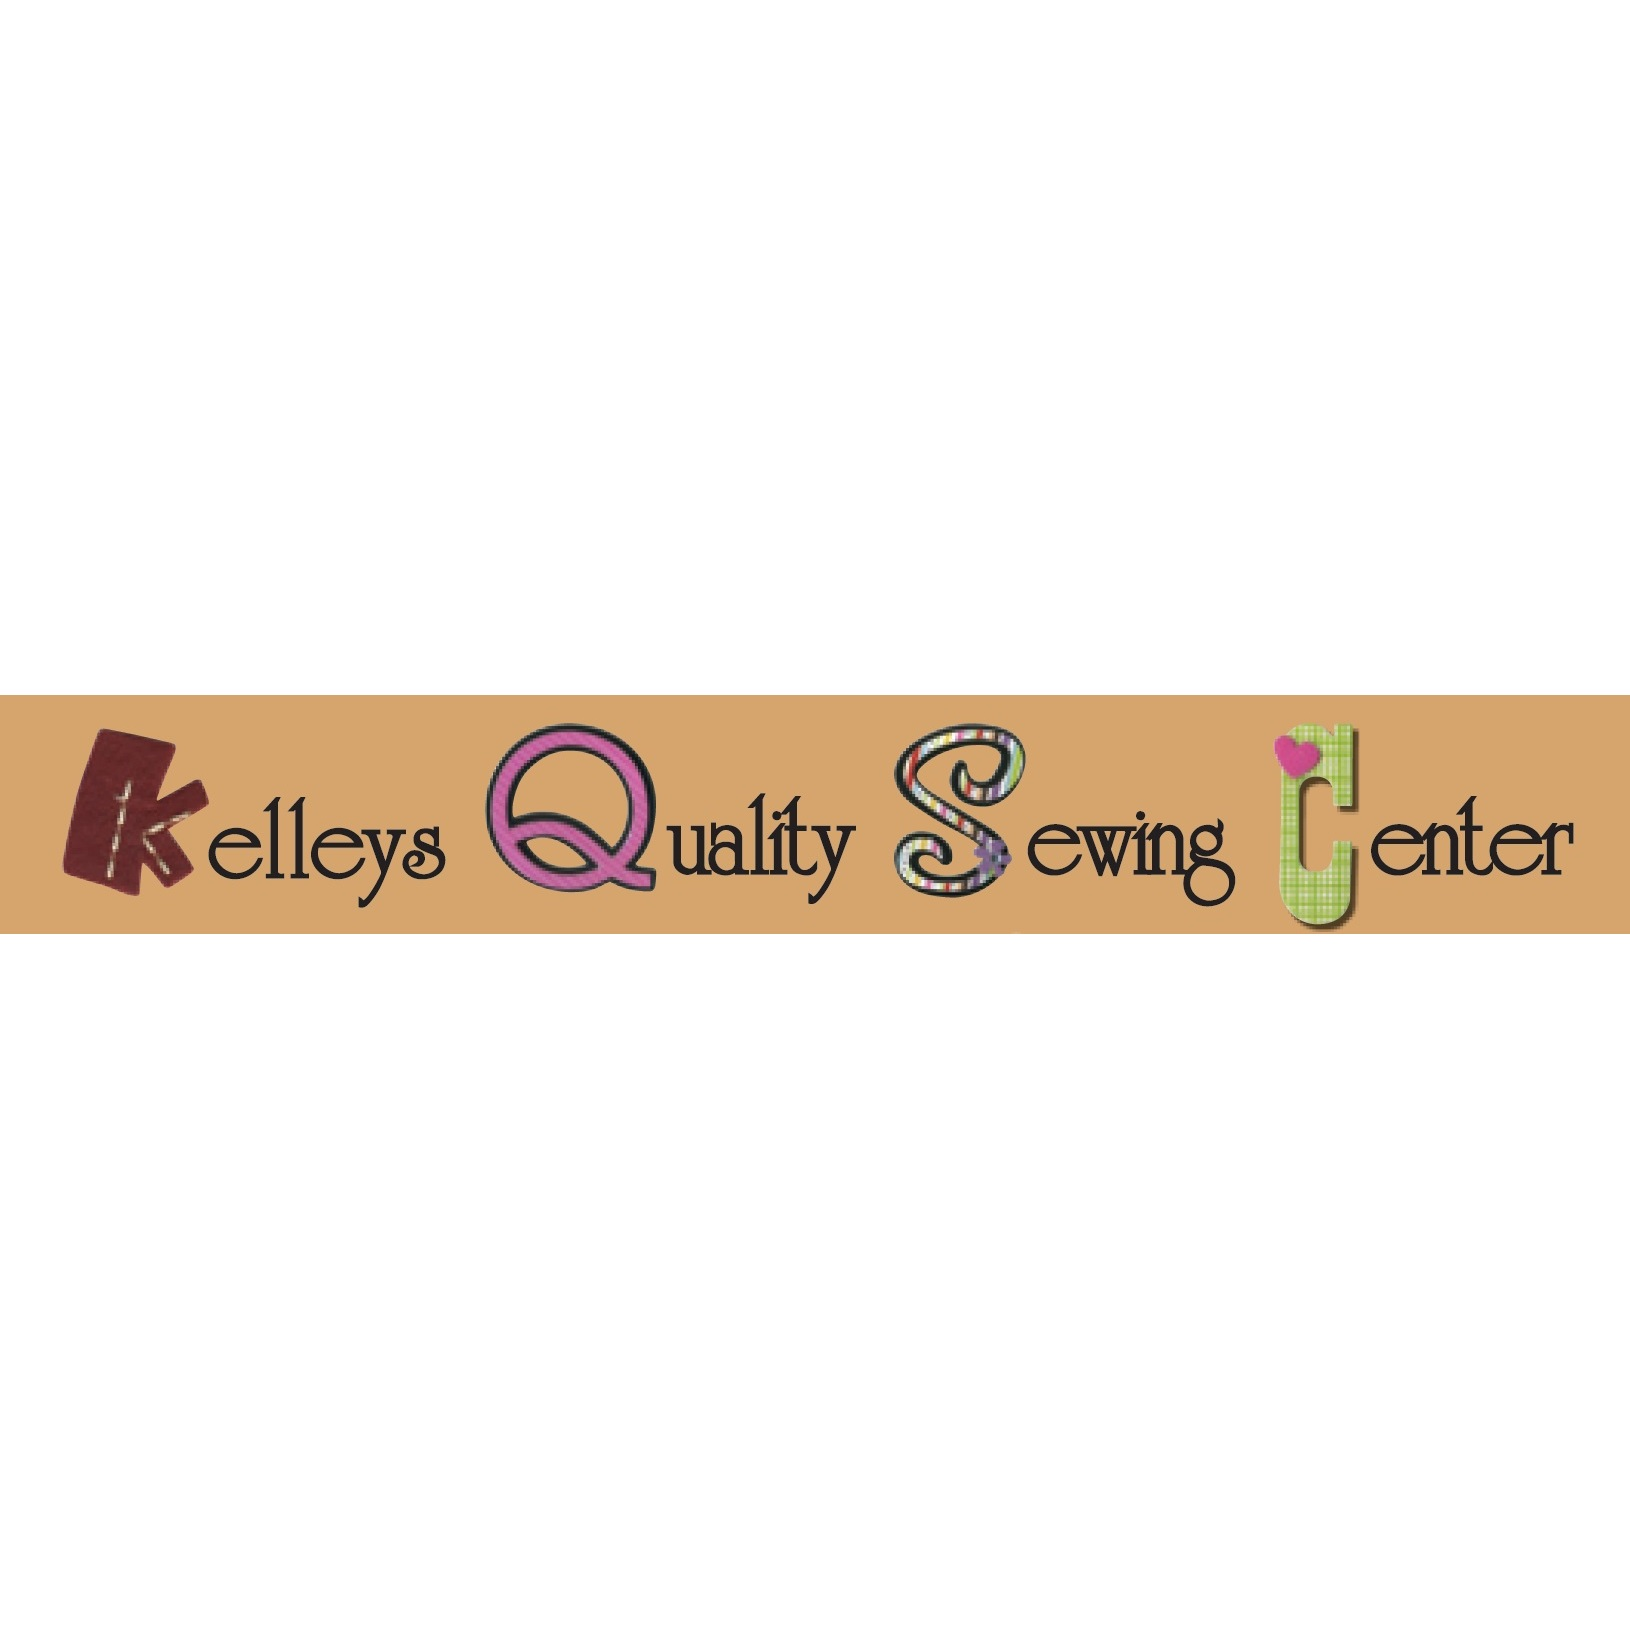 Kelly's Quality Sewing Center